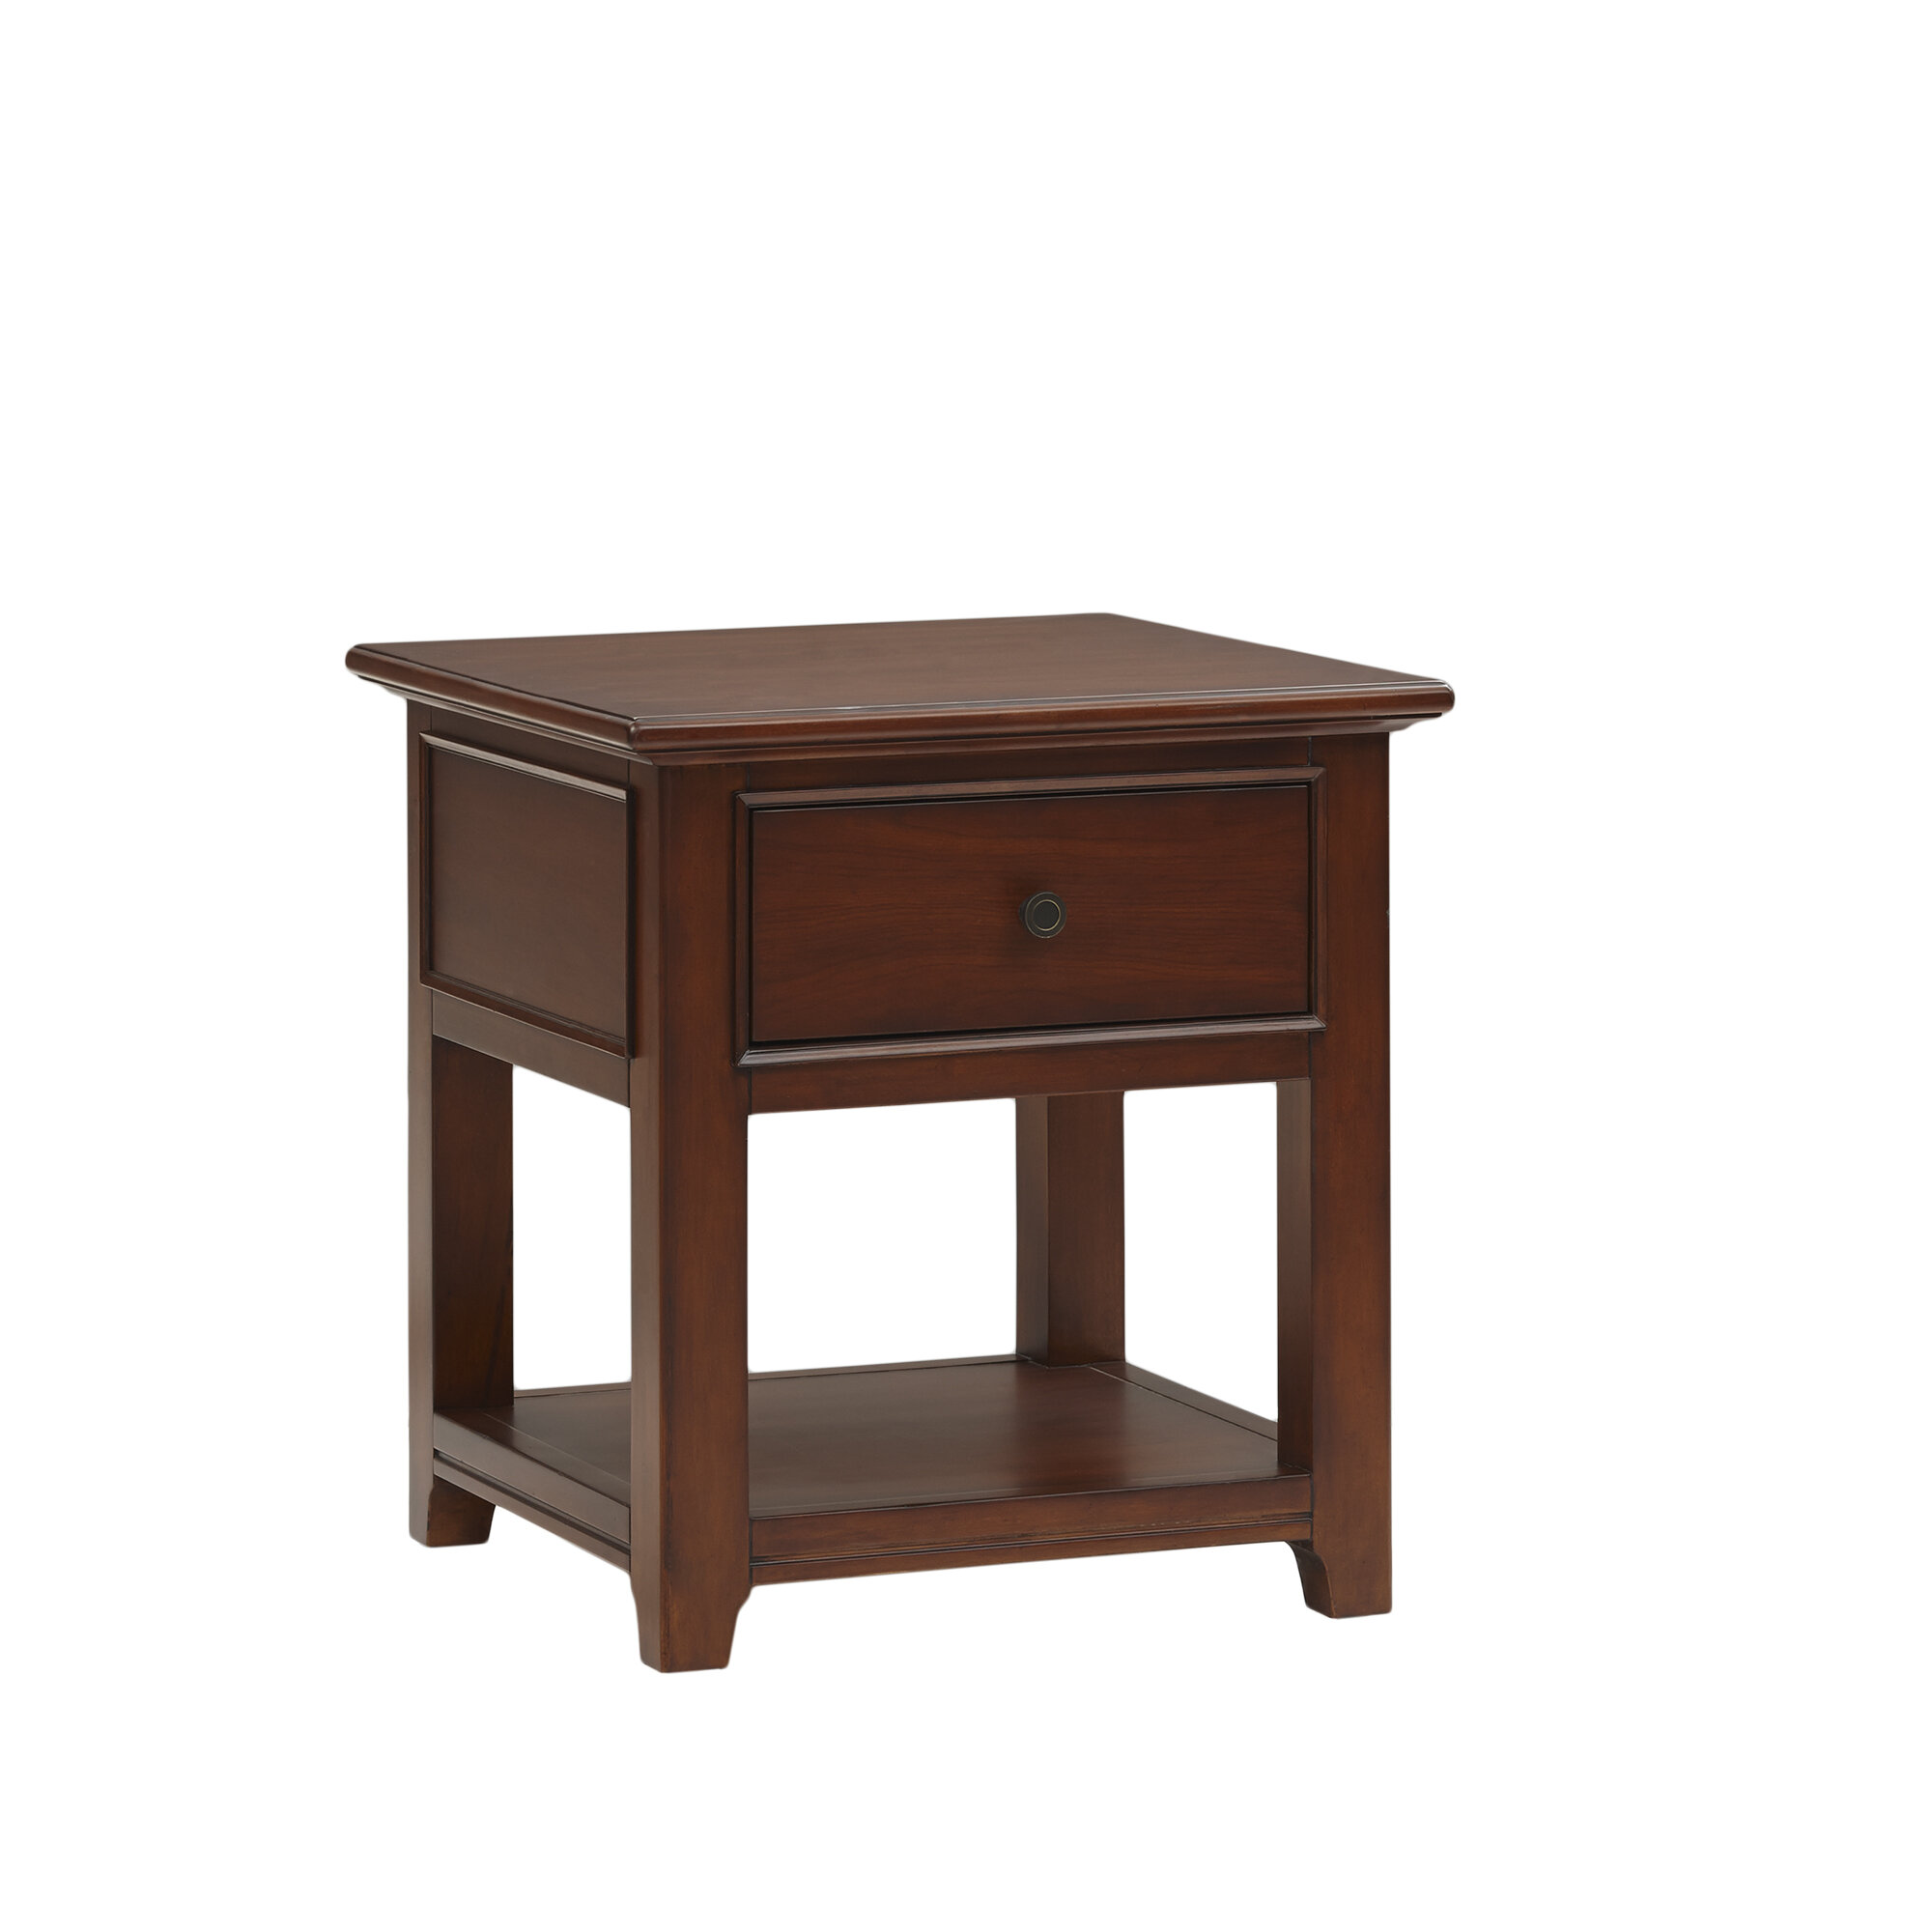 Merveilleux Harbor House Asheville End Table With Storage | Wayfair